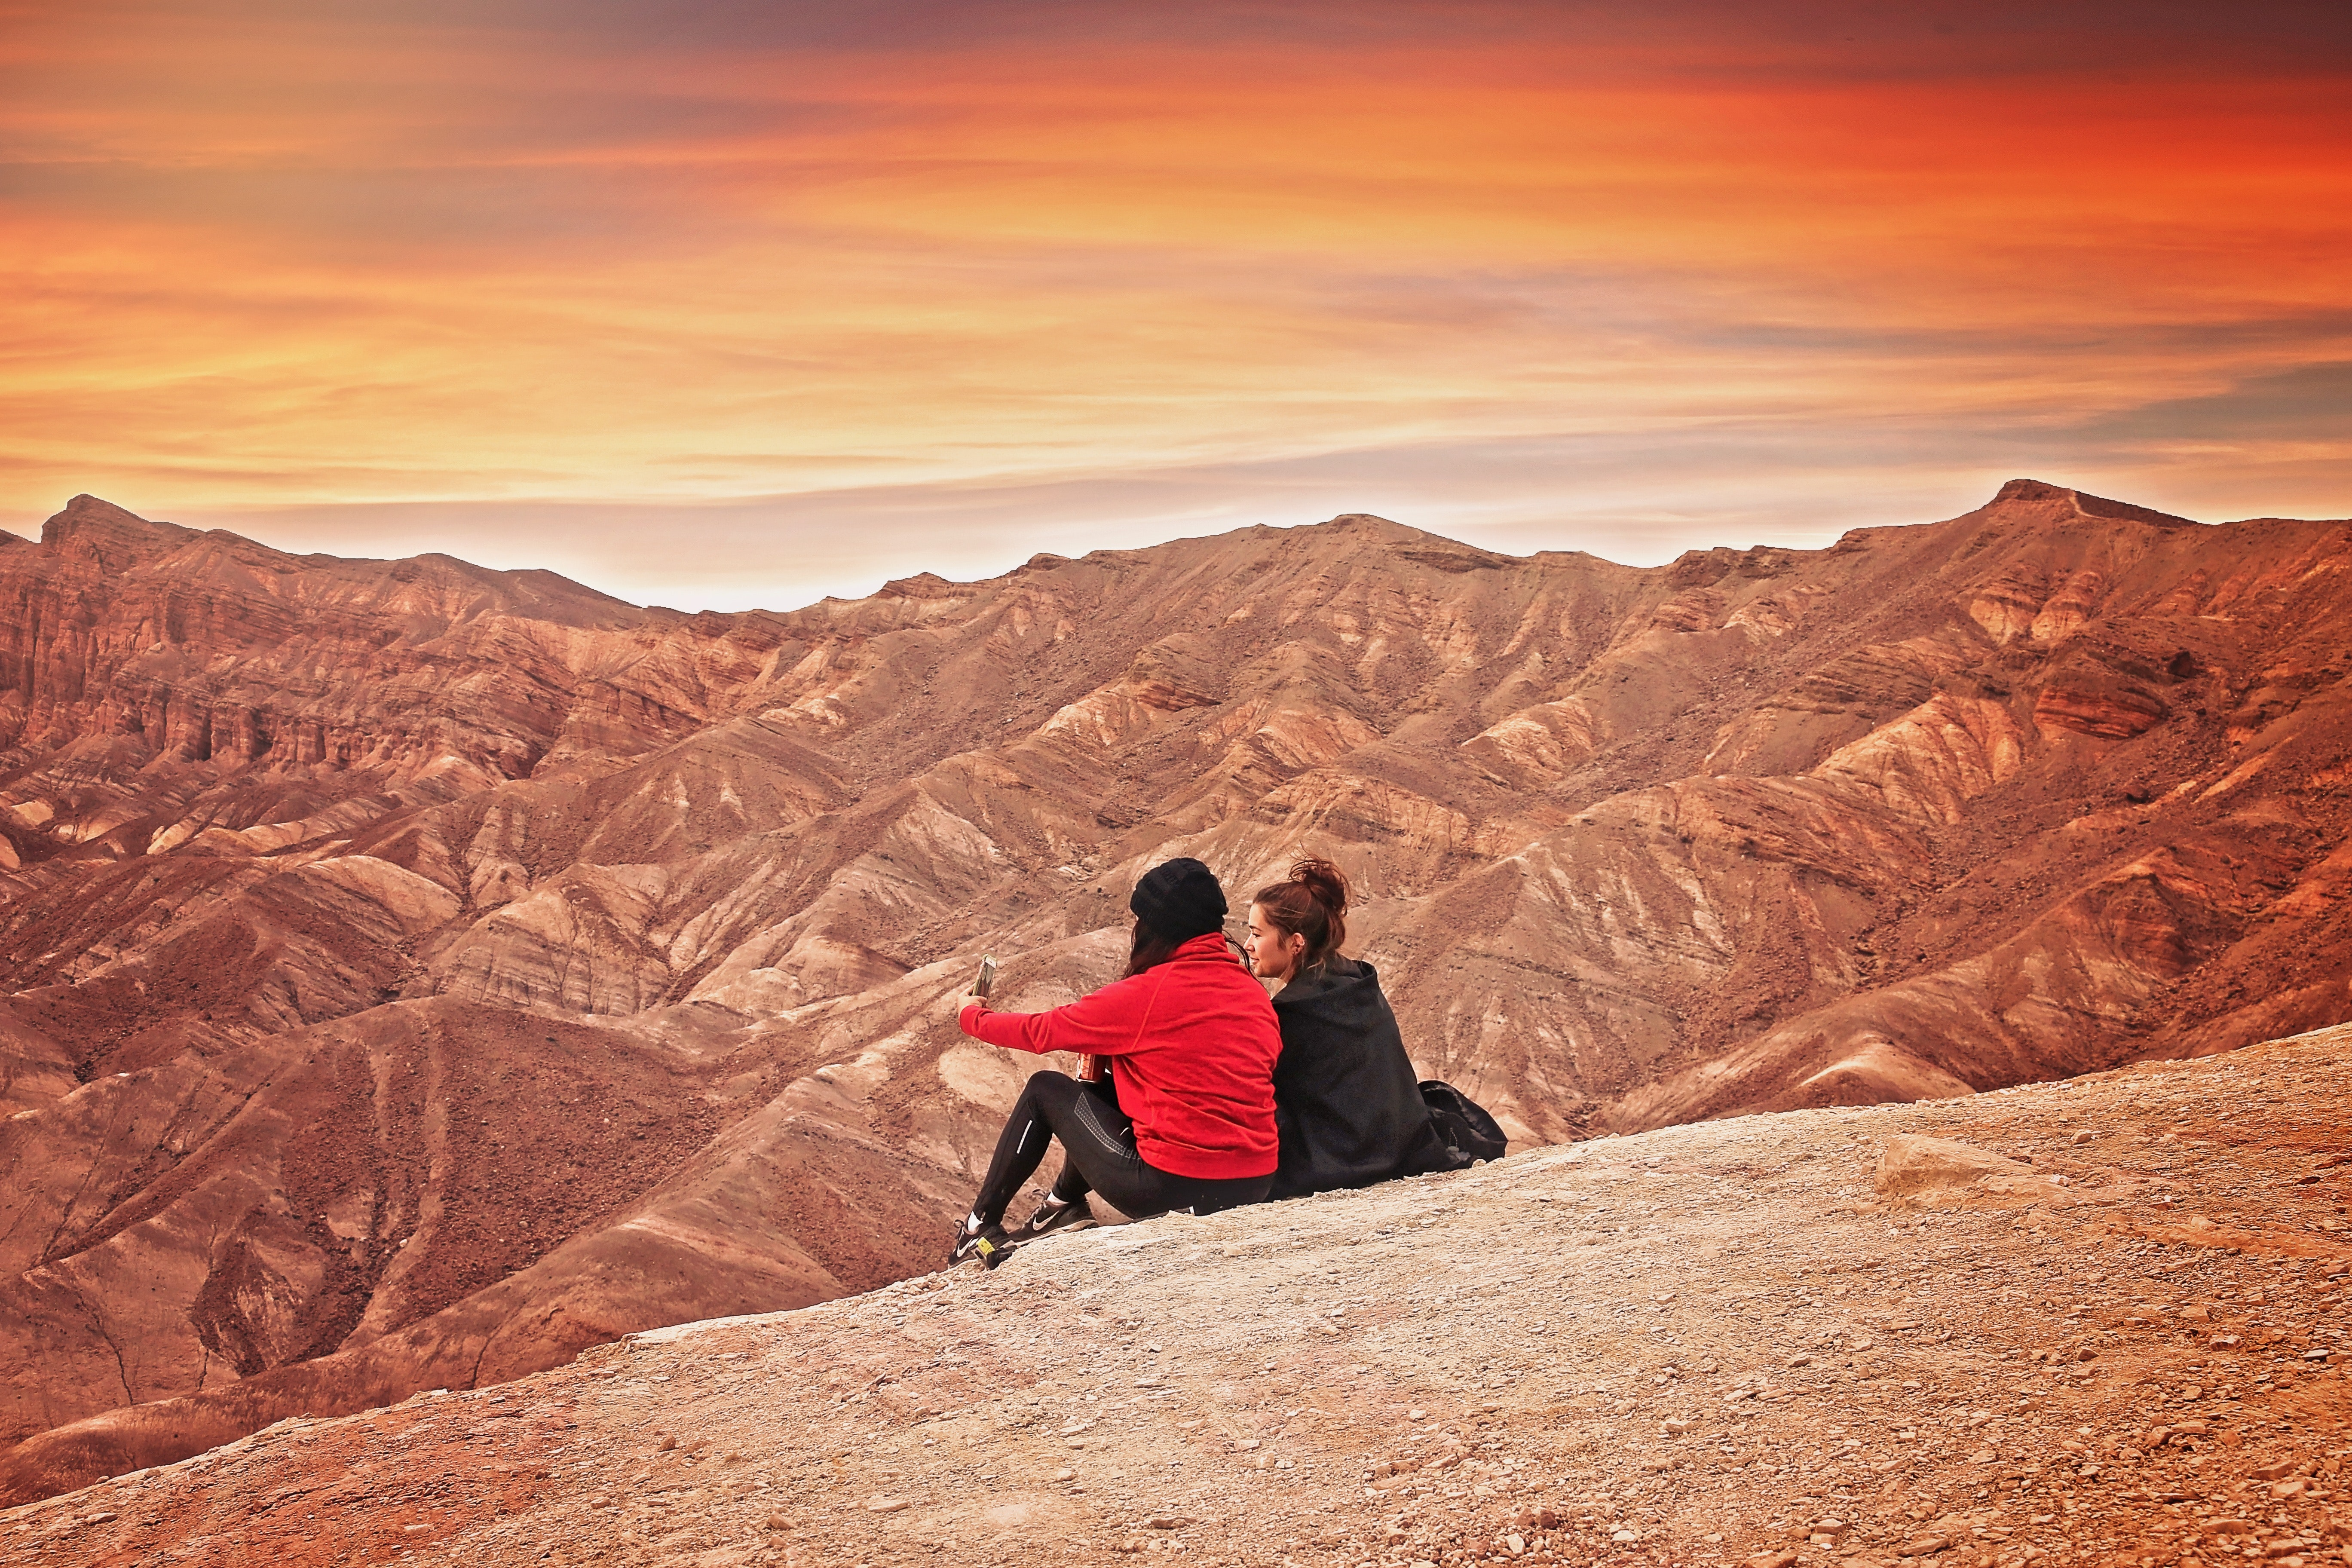 2 Woman Seating on the Mountain Cliff during Golden Hour, Adventure, Outdoors, Sunset, Sunrise, HQ Photo